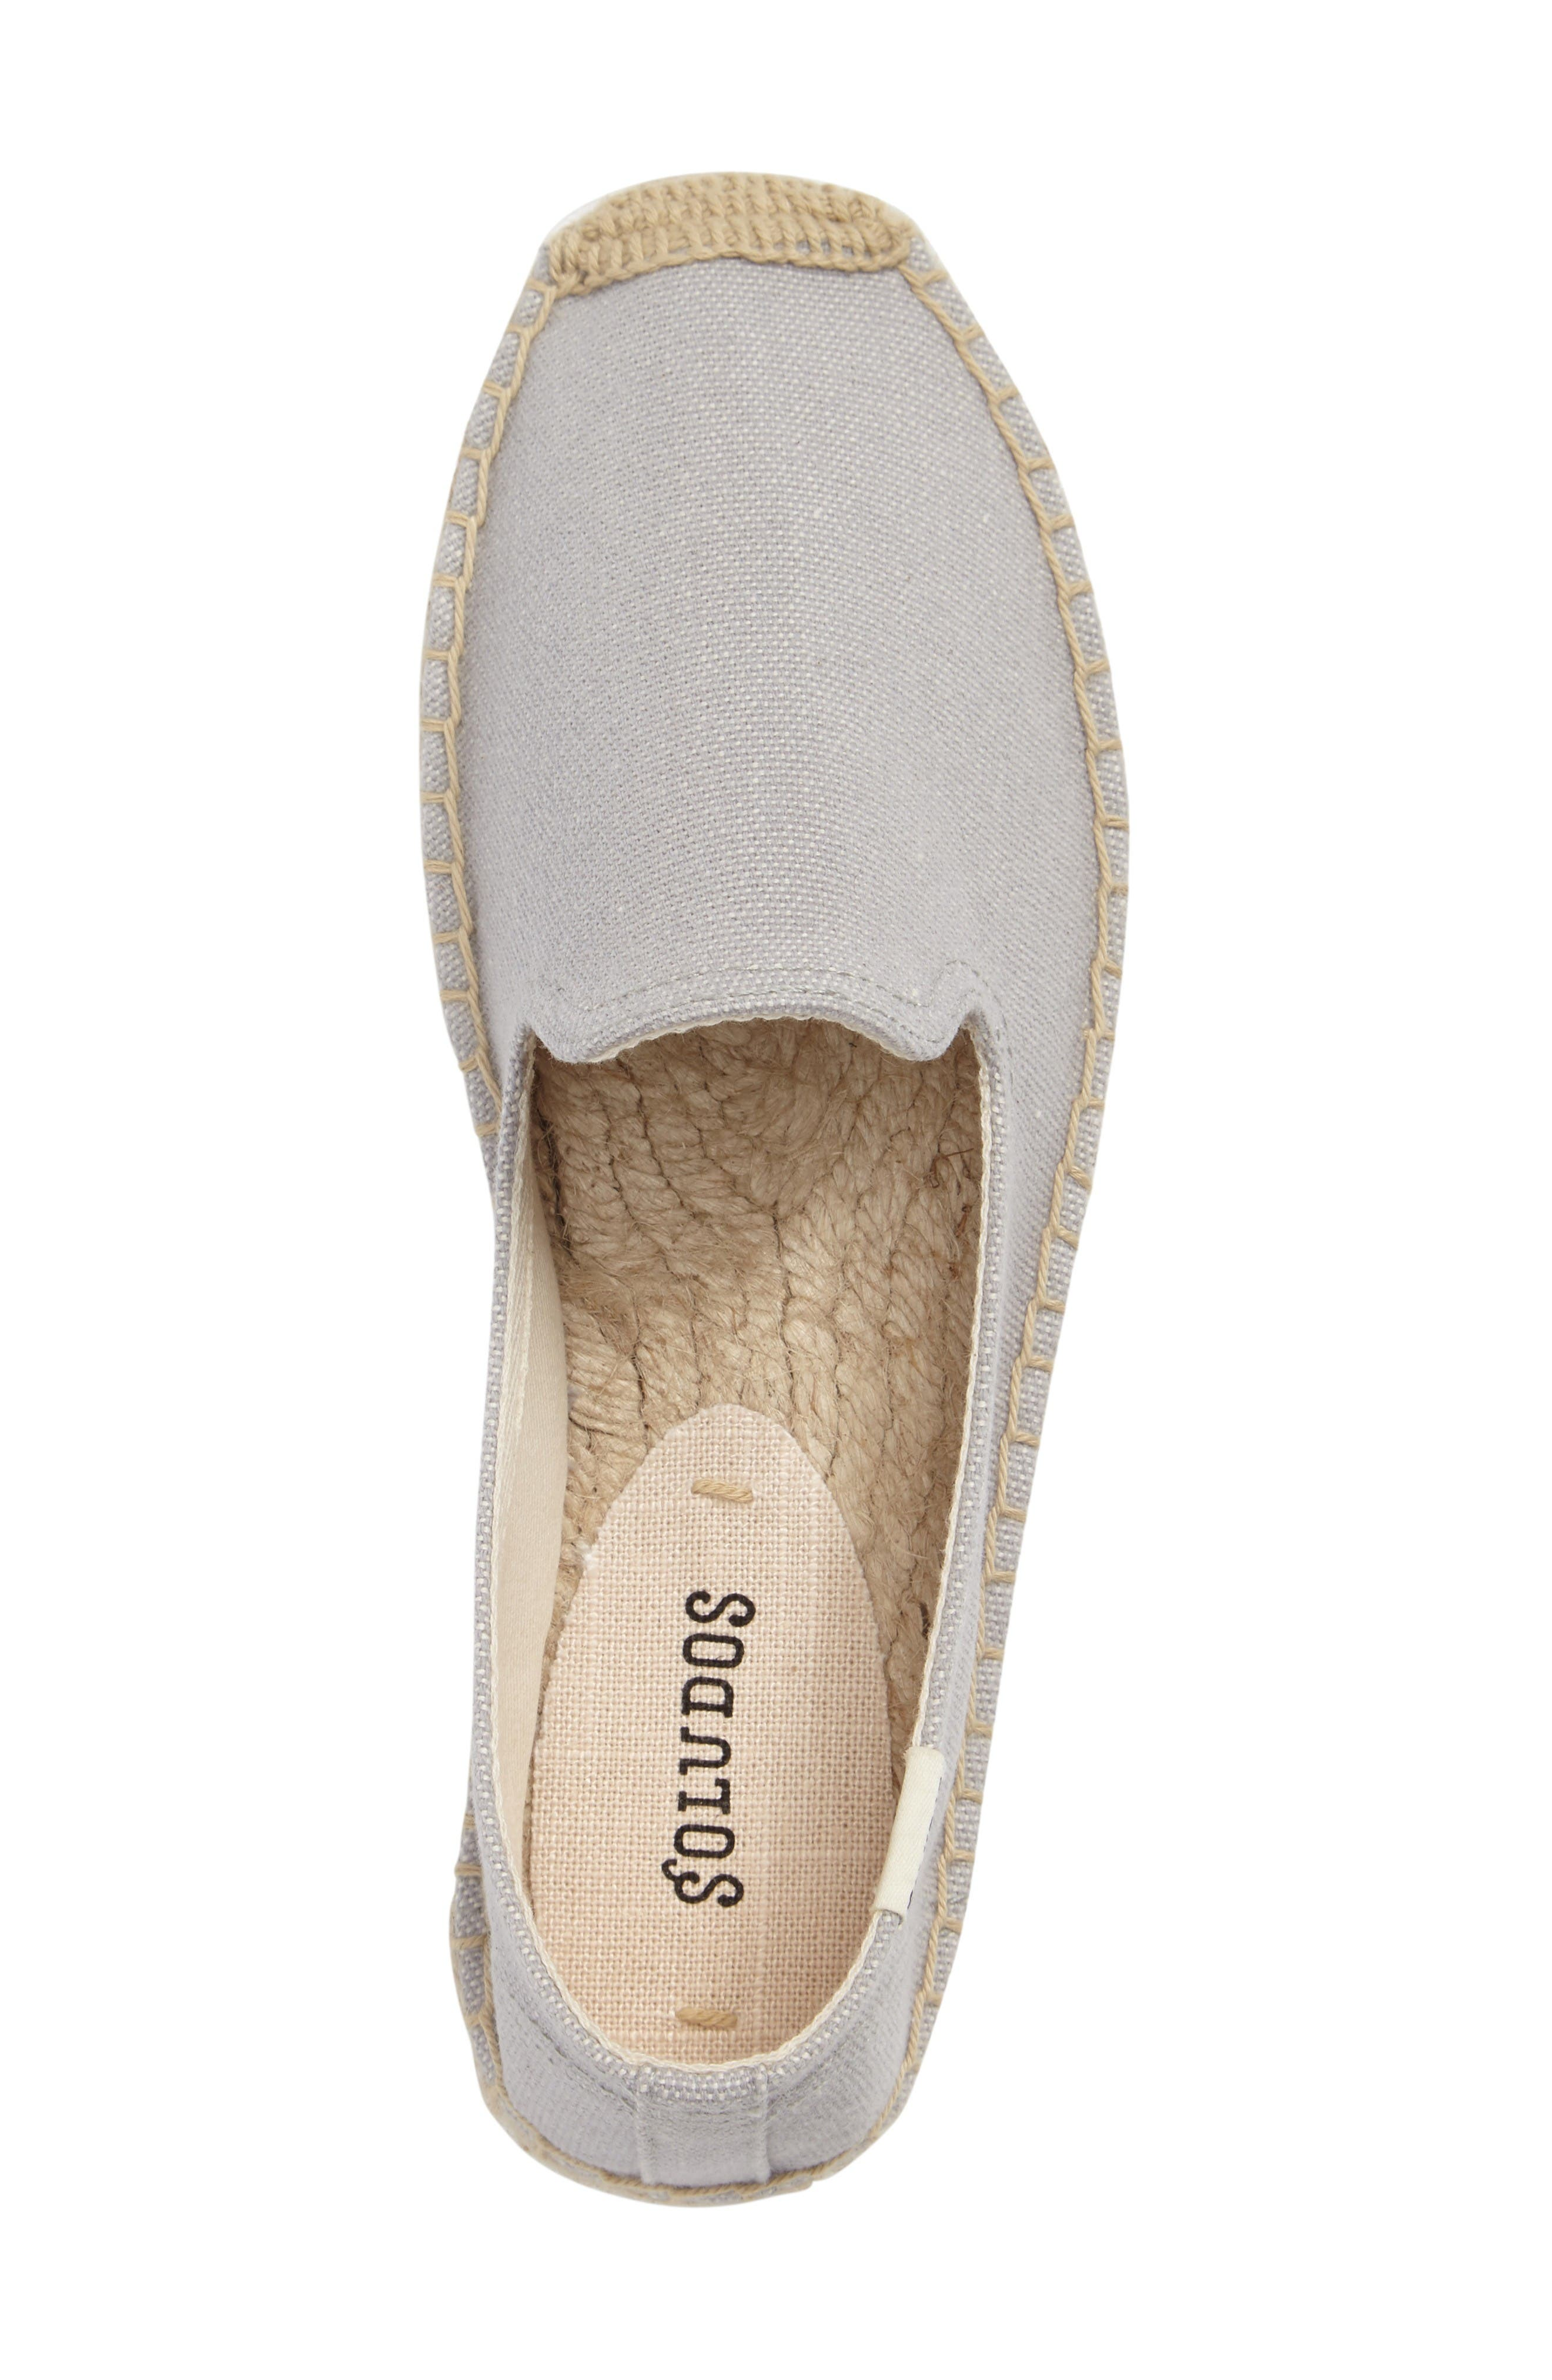 Alternate Image 3  - Soludos Espadrille Loafer (Women)